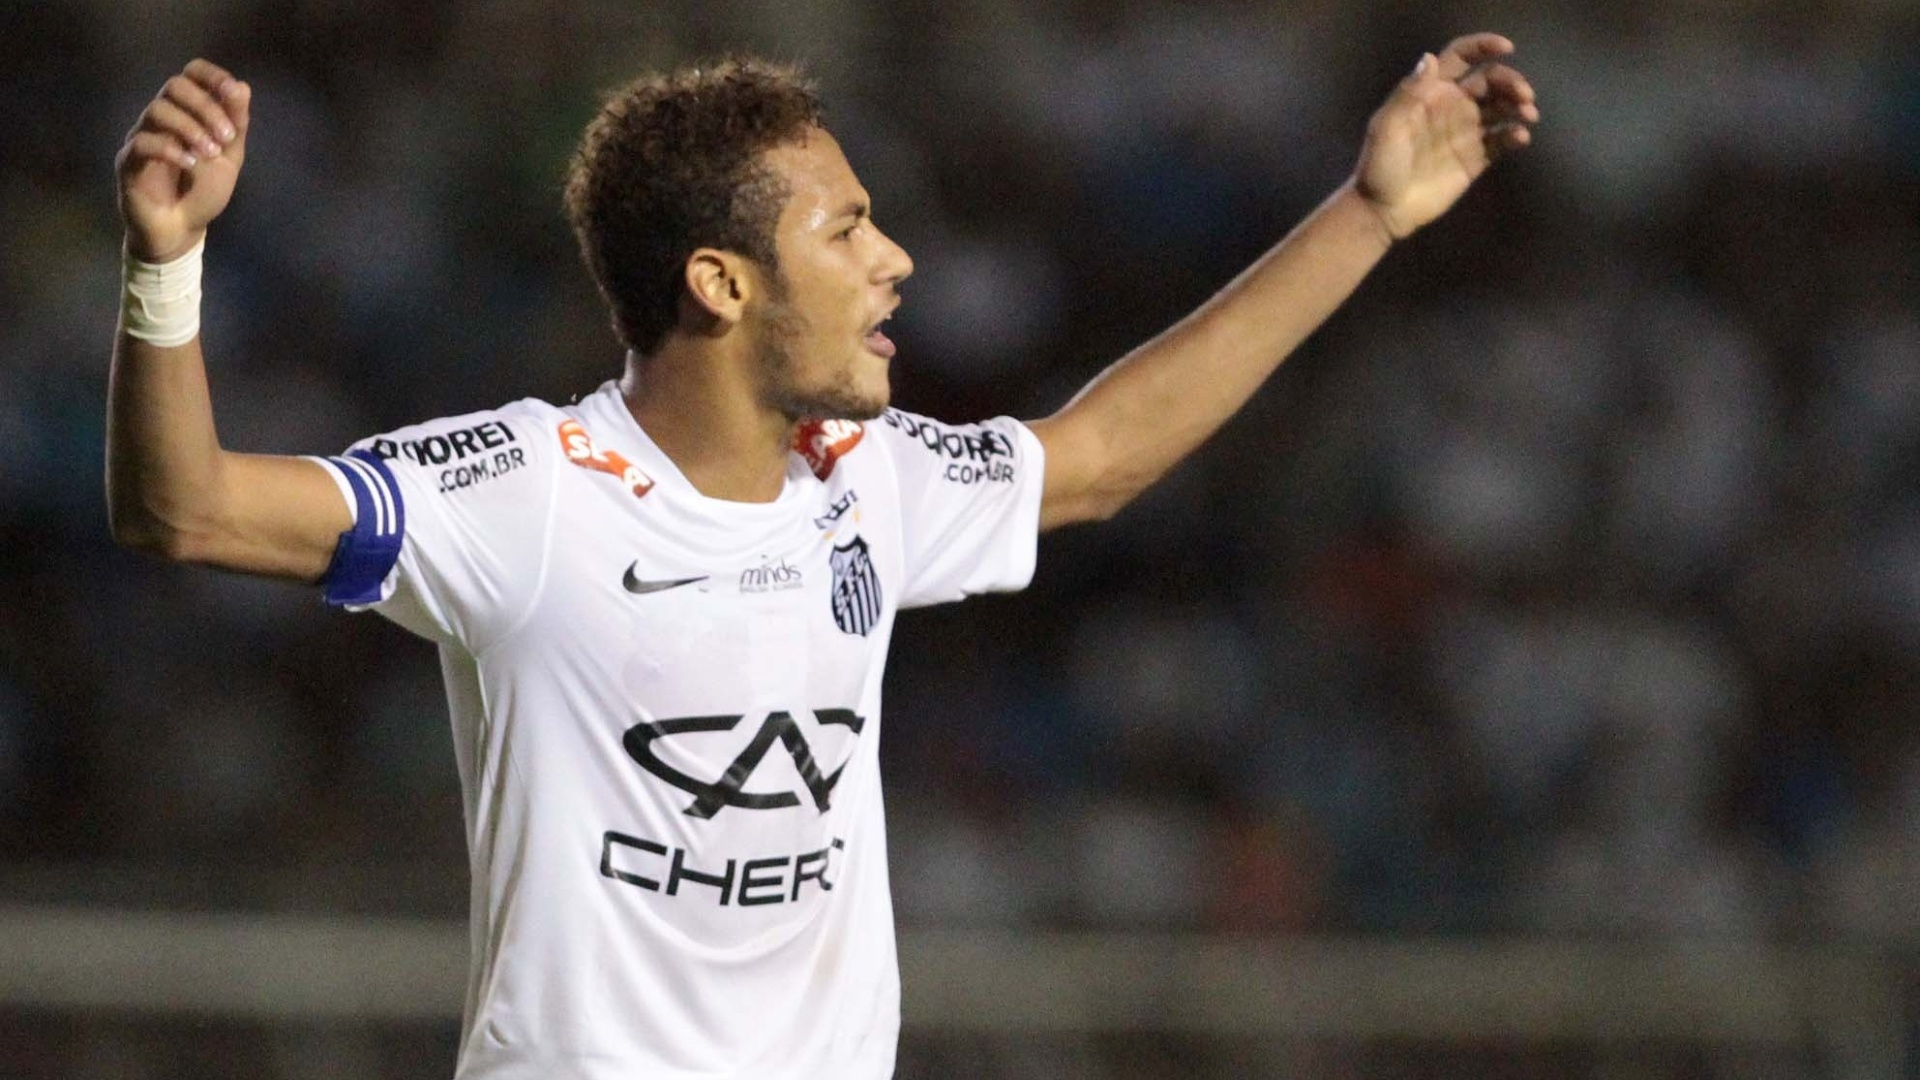 31.mar.2013 - Neymar em ao na partida entre Santos e Oeste pelo Campeonato Paulista